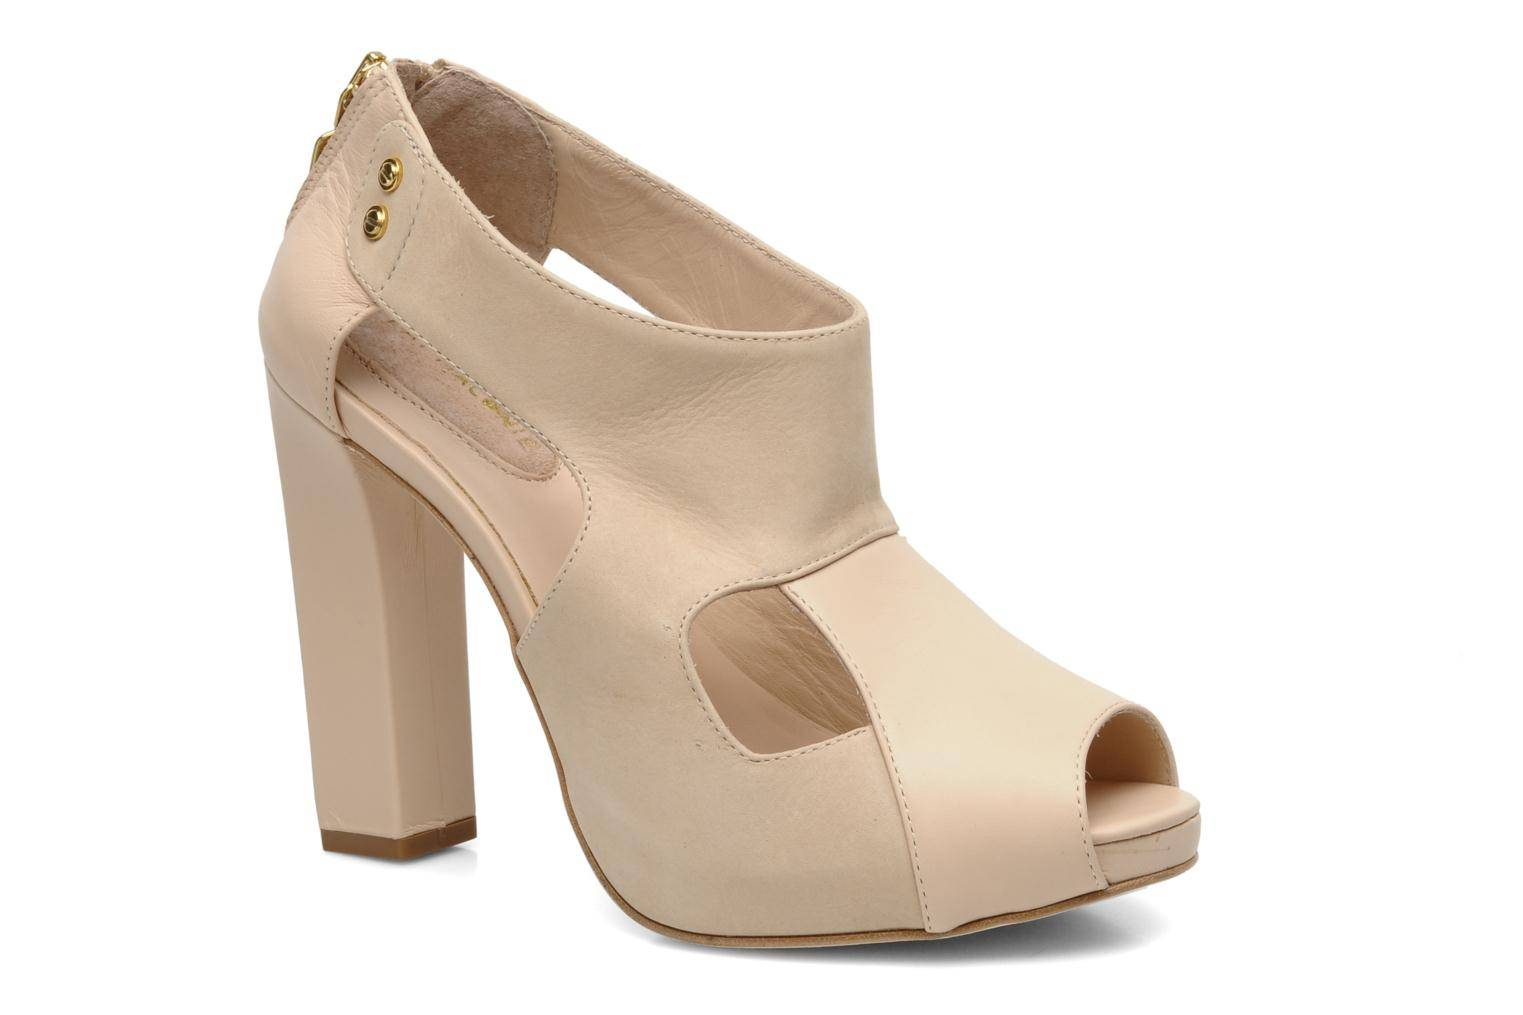 Kat Maconie - LUCY by  - Sandaalit Naisille  / Beige